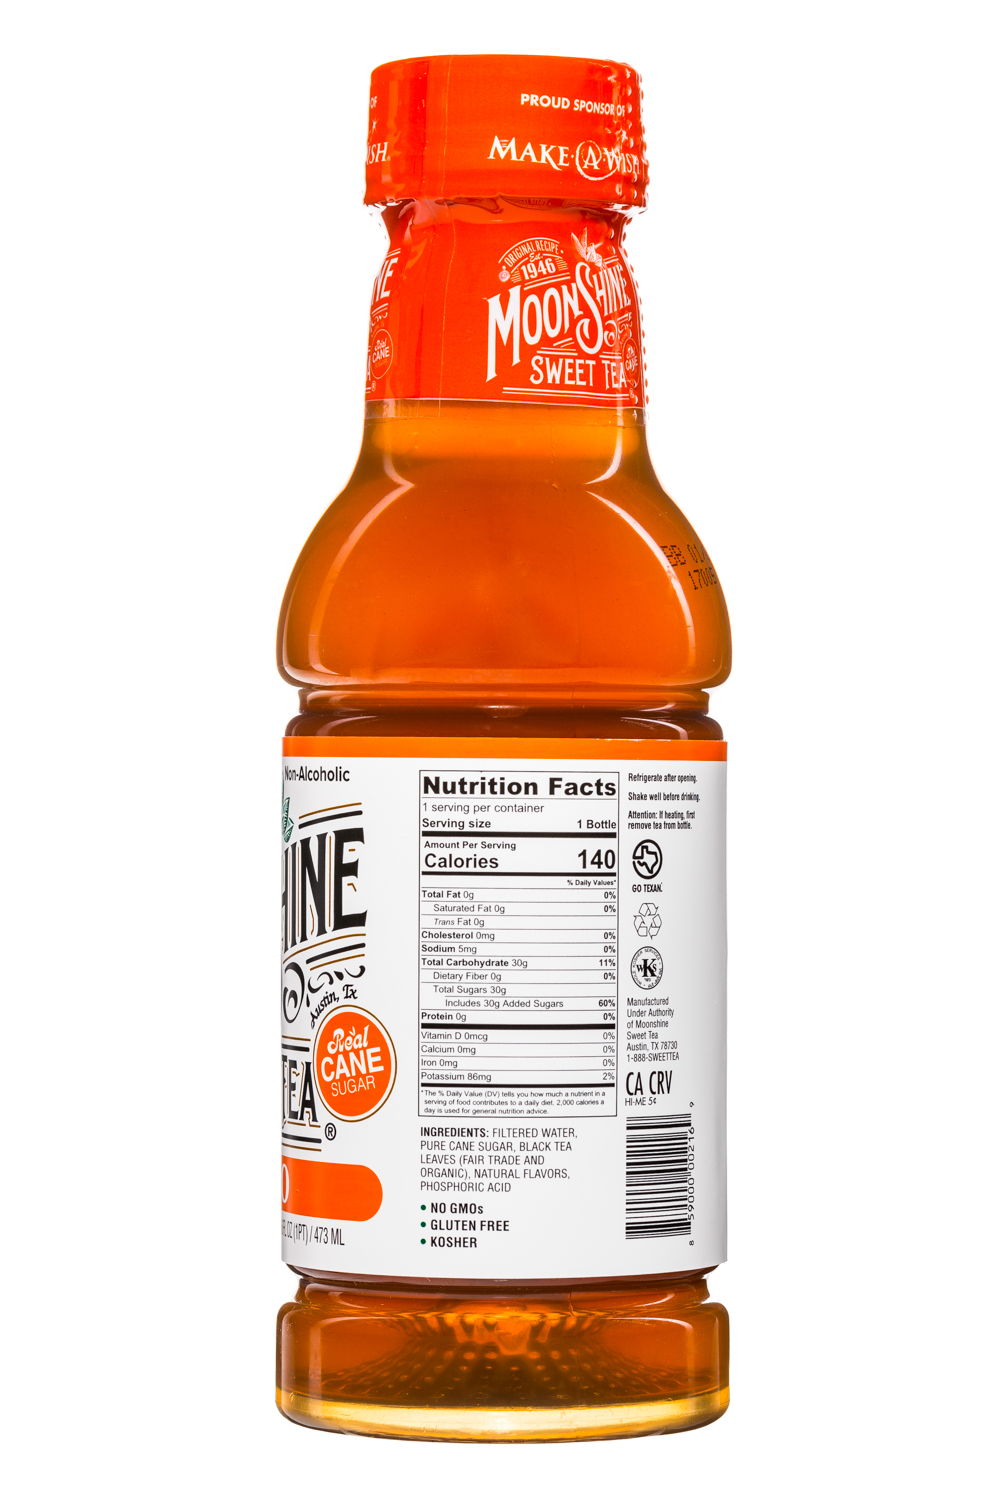 MoonShine Sweet Tea LLC: MoonshineSweetTea-16oz-Mango-Facts